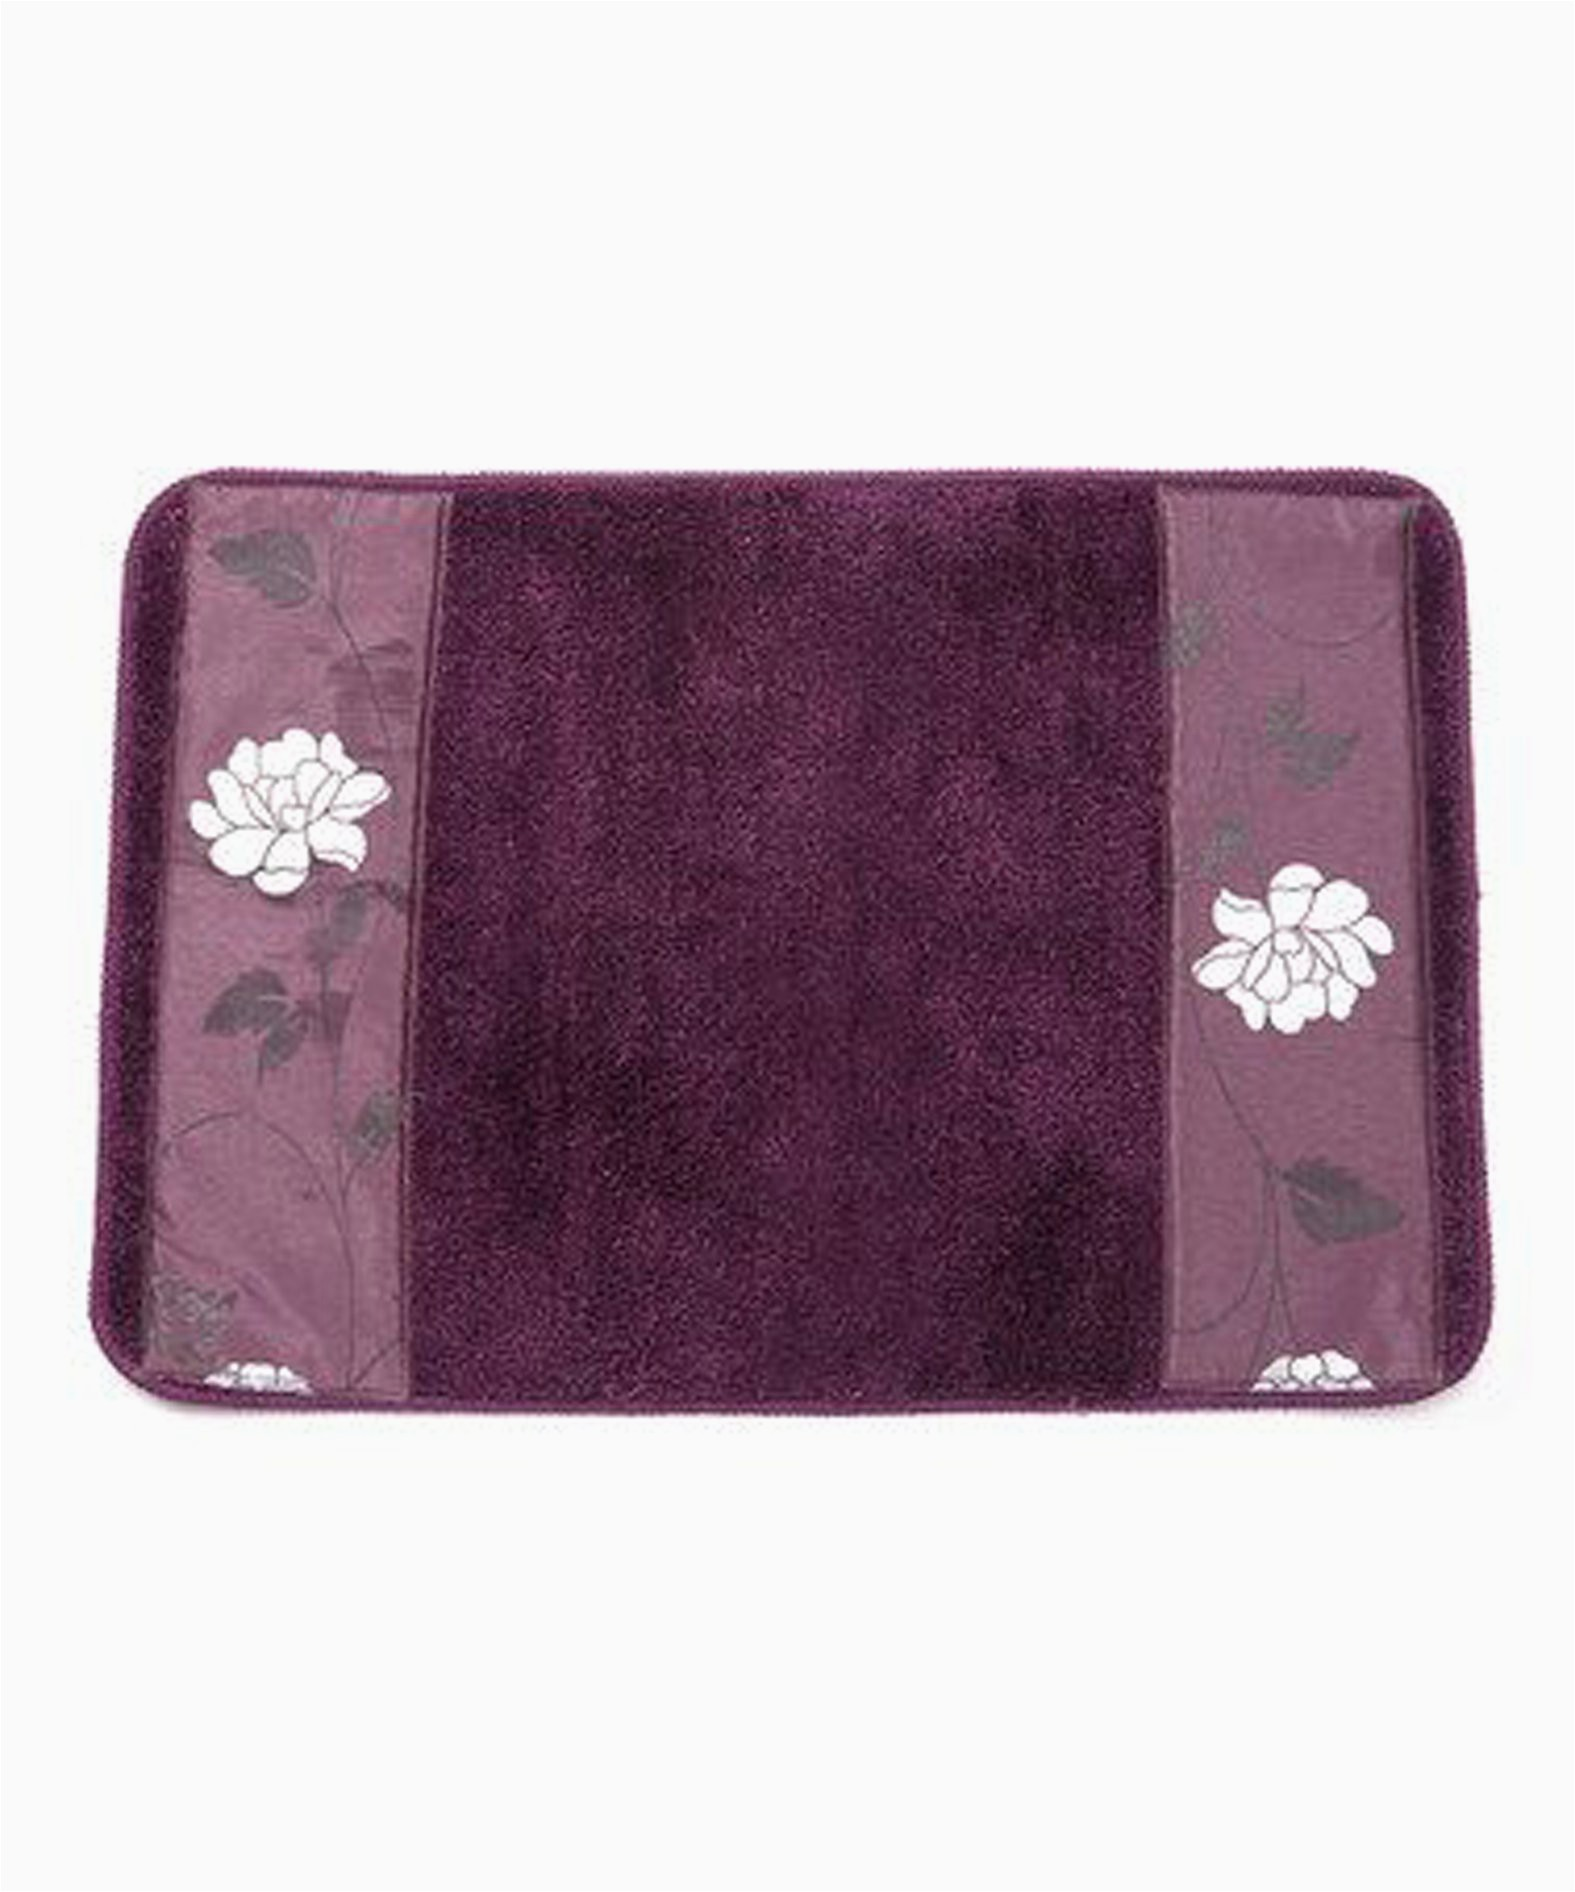 popular home the avanti collection banded bath rug purple 21 by 12 by 1